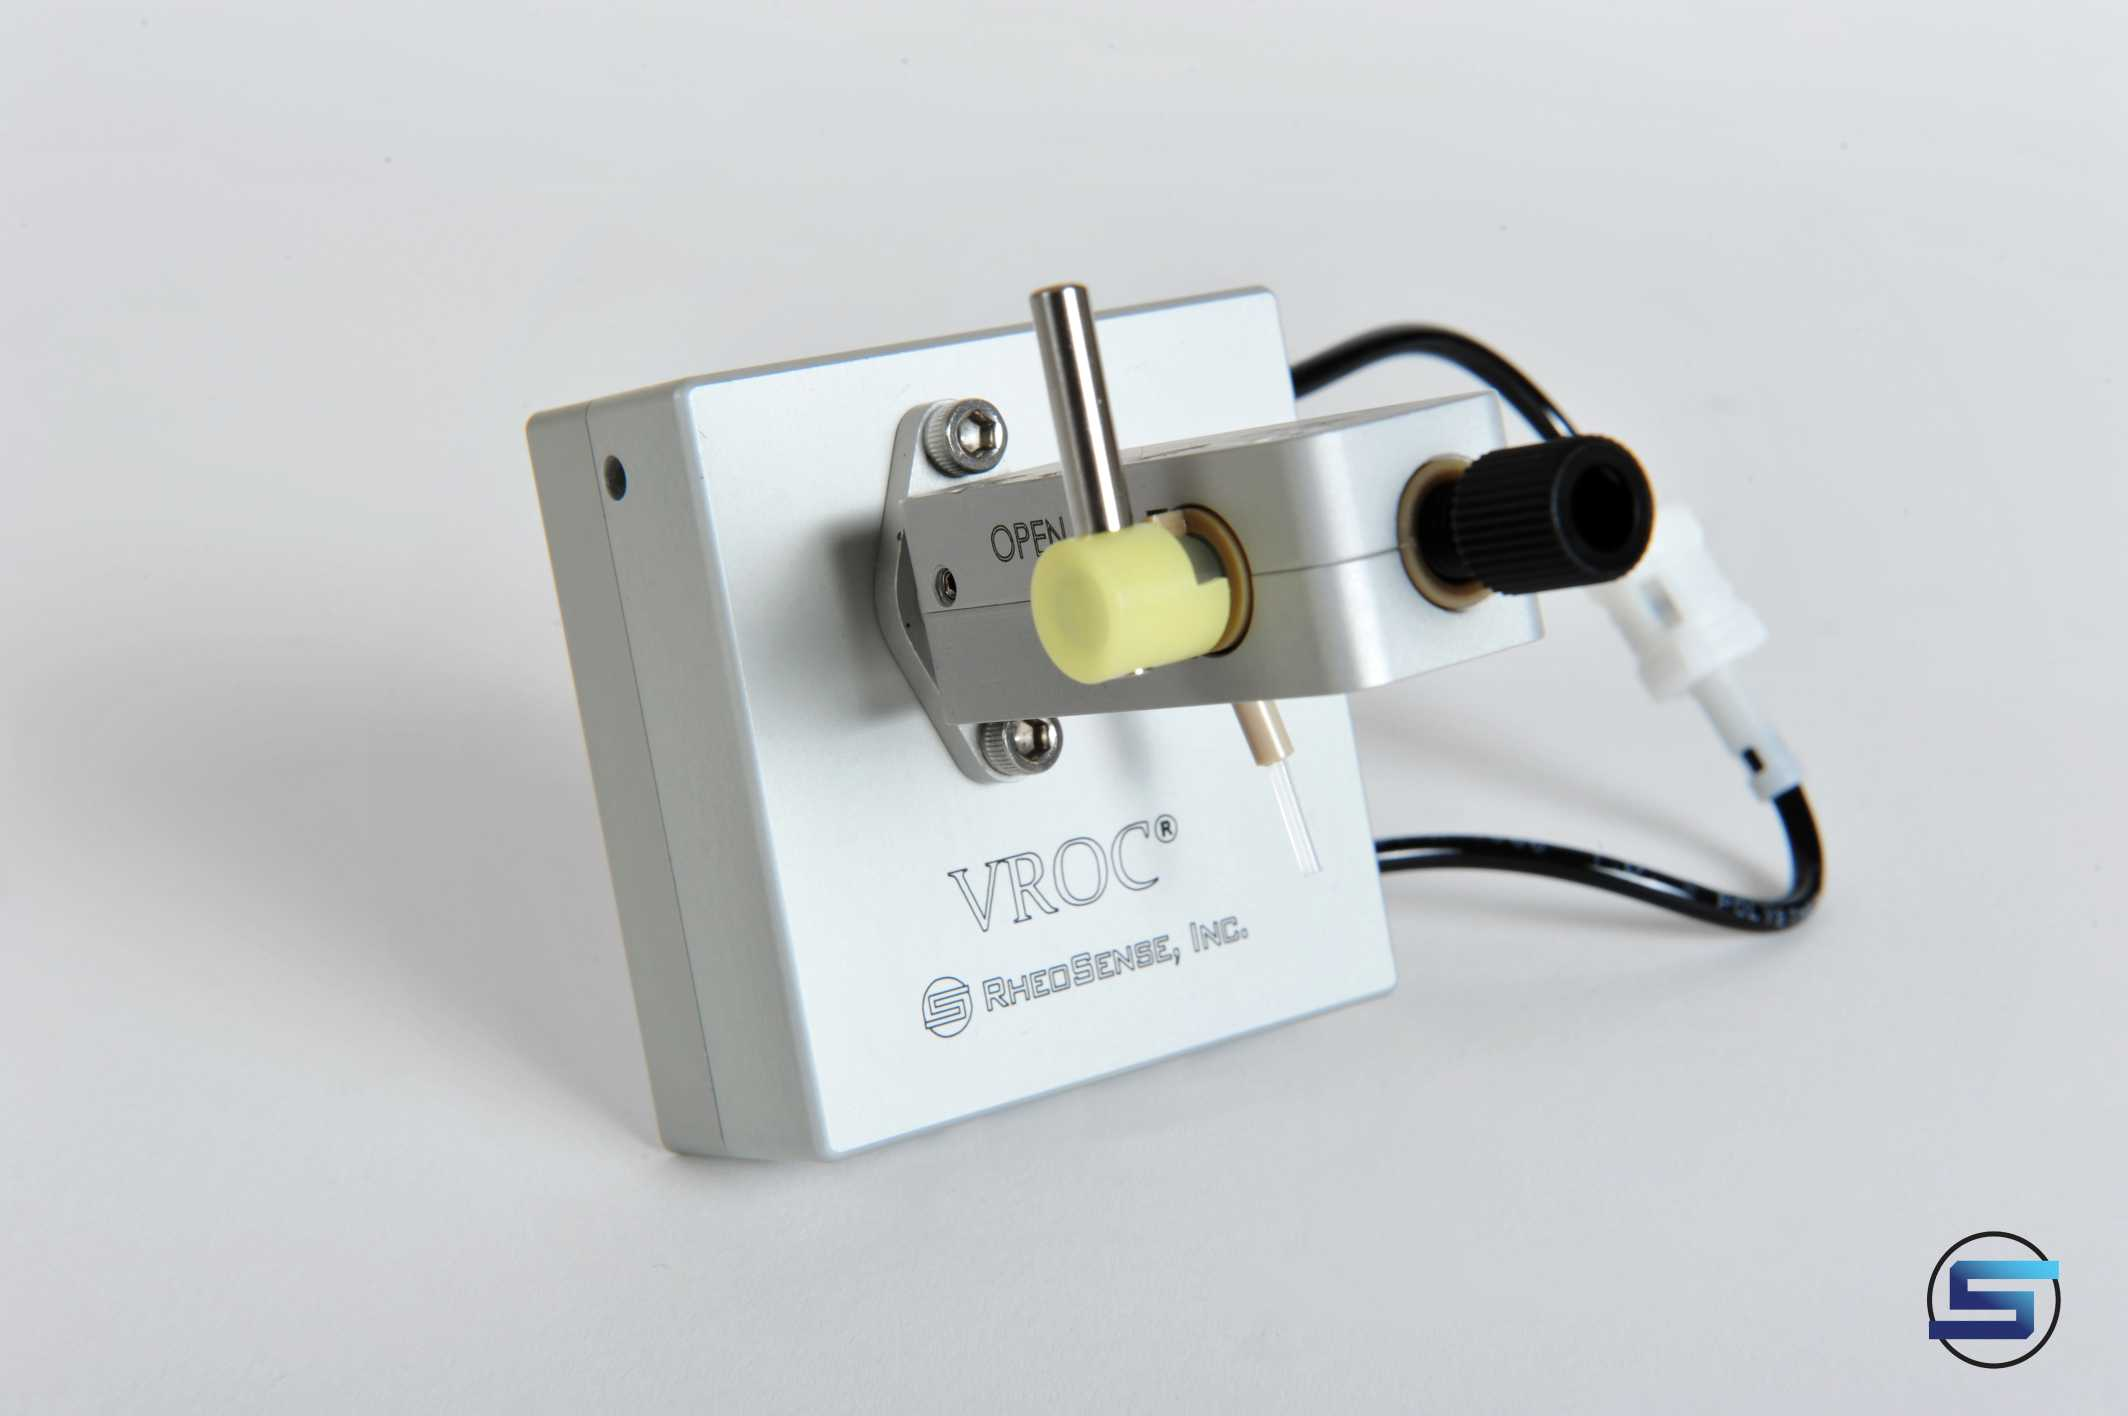 VROC Chip for small sample viscometers